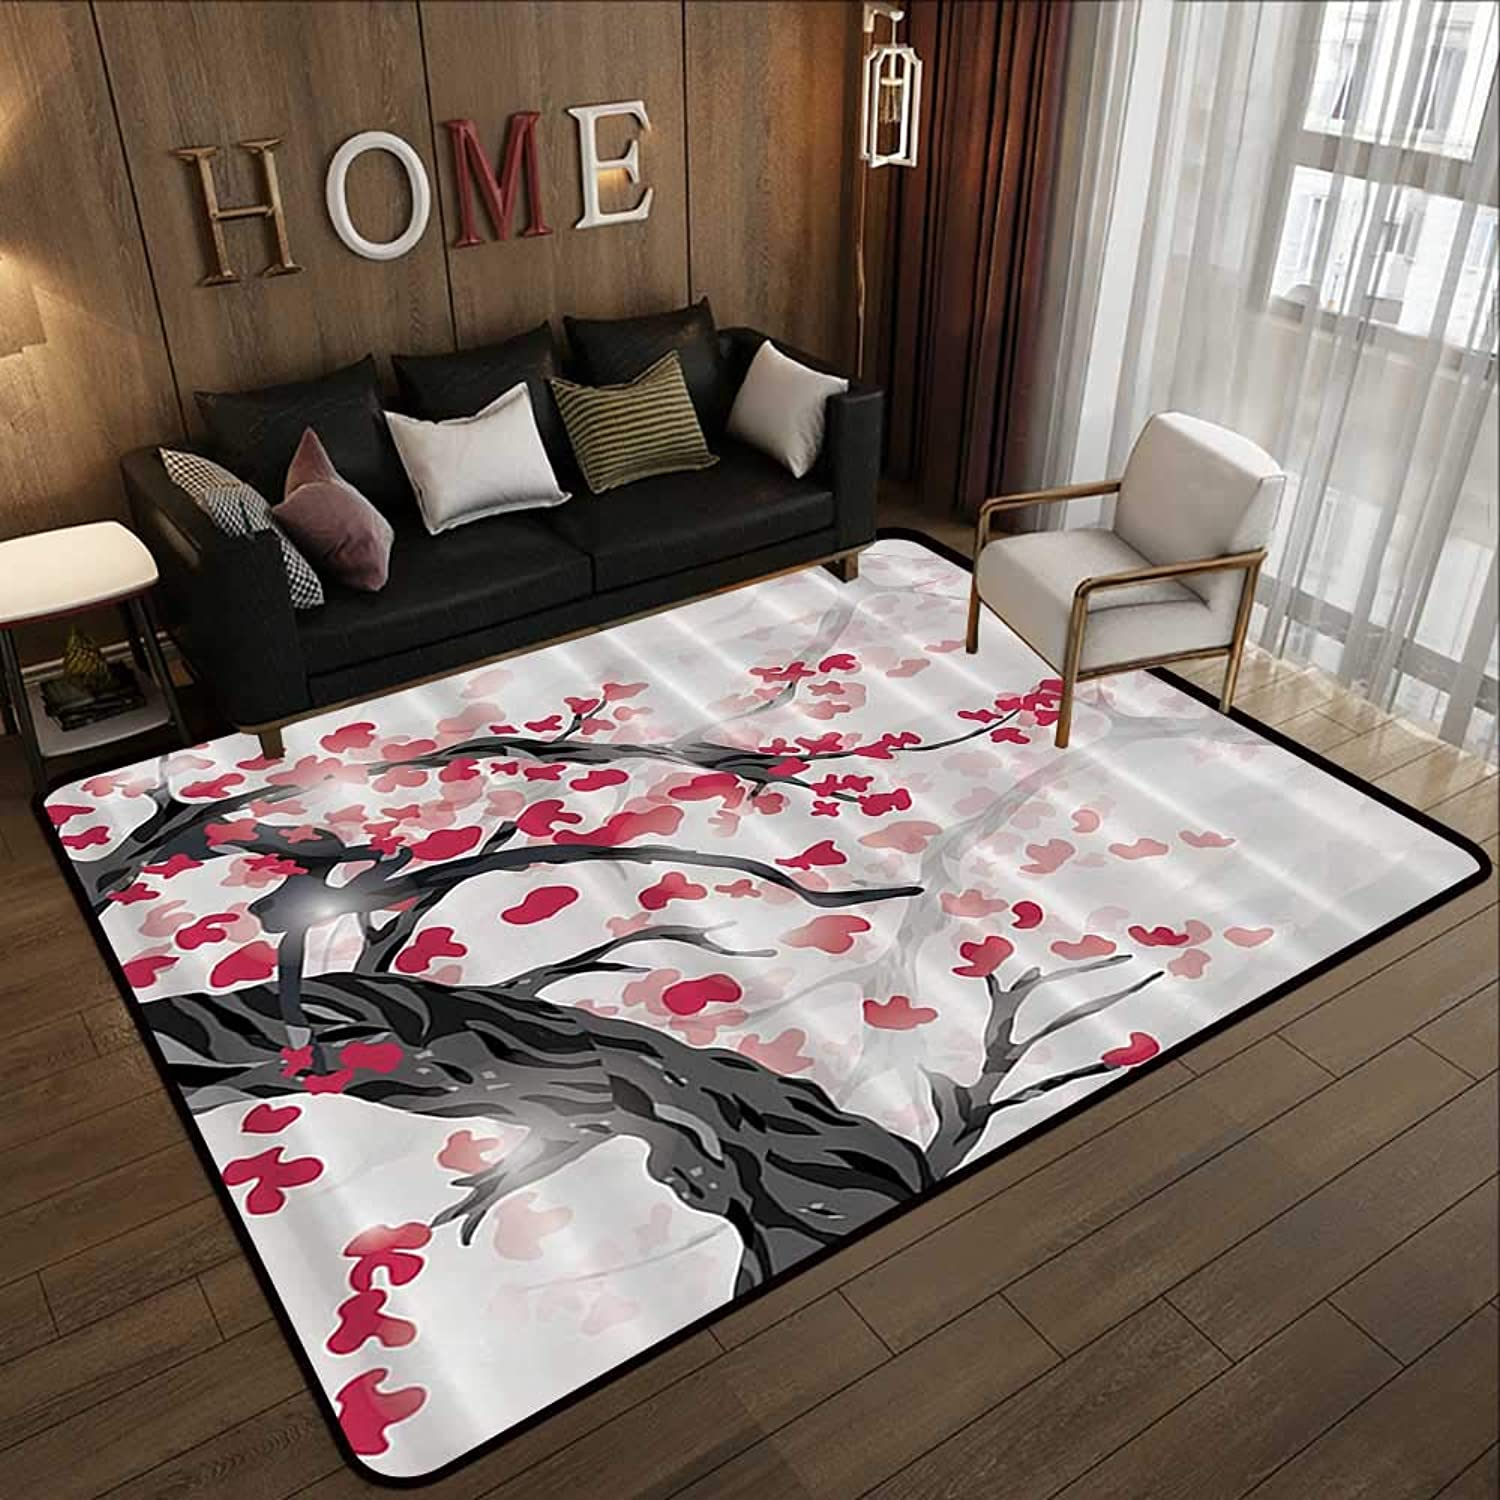 Modern Abstract Area Rug,Japanese Plum Tree and Cherry Flowers Garden 55 x 63  Anti-Slip Toilet Doormat Home Decor